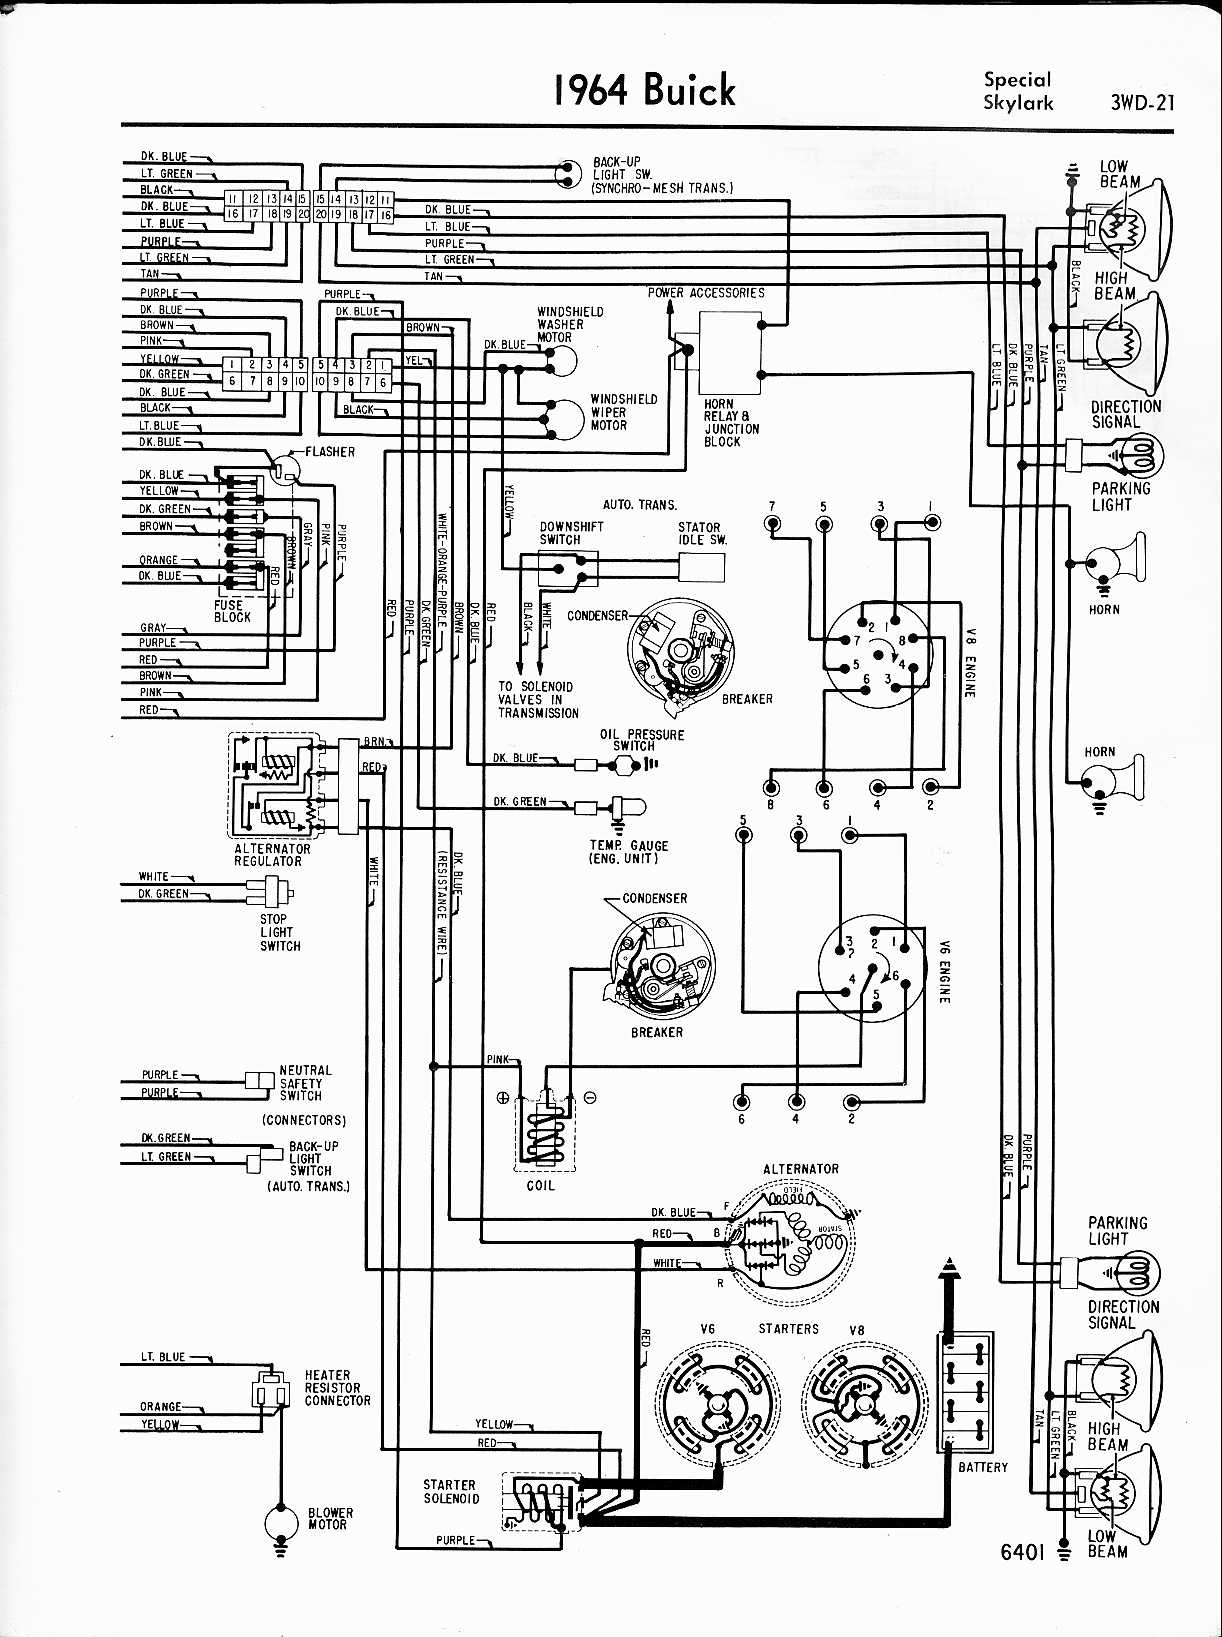 Buick Skylark Fuse Box Wiring Diagram Data 1998 Lesabre 1971 Riviera Touch Diagrams 2000 Skyhawk